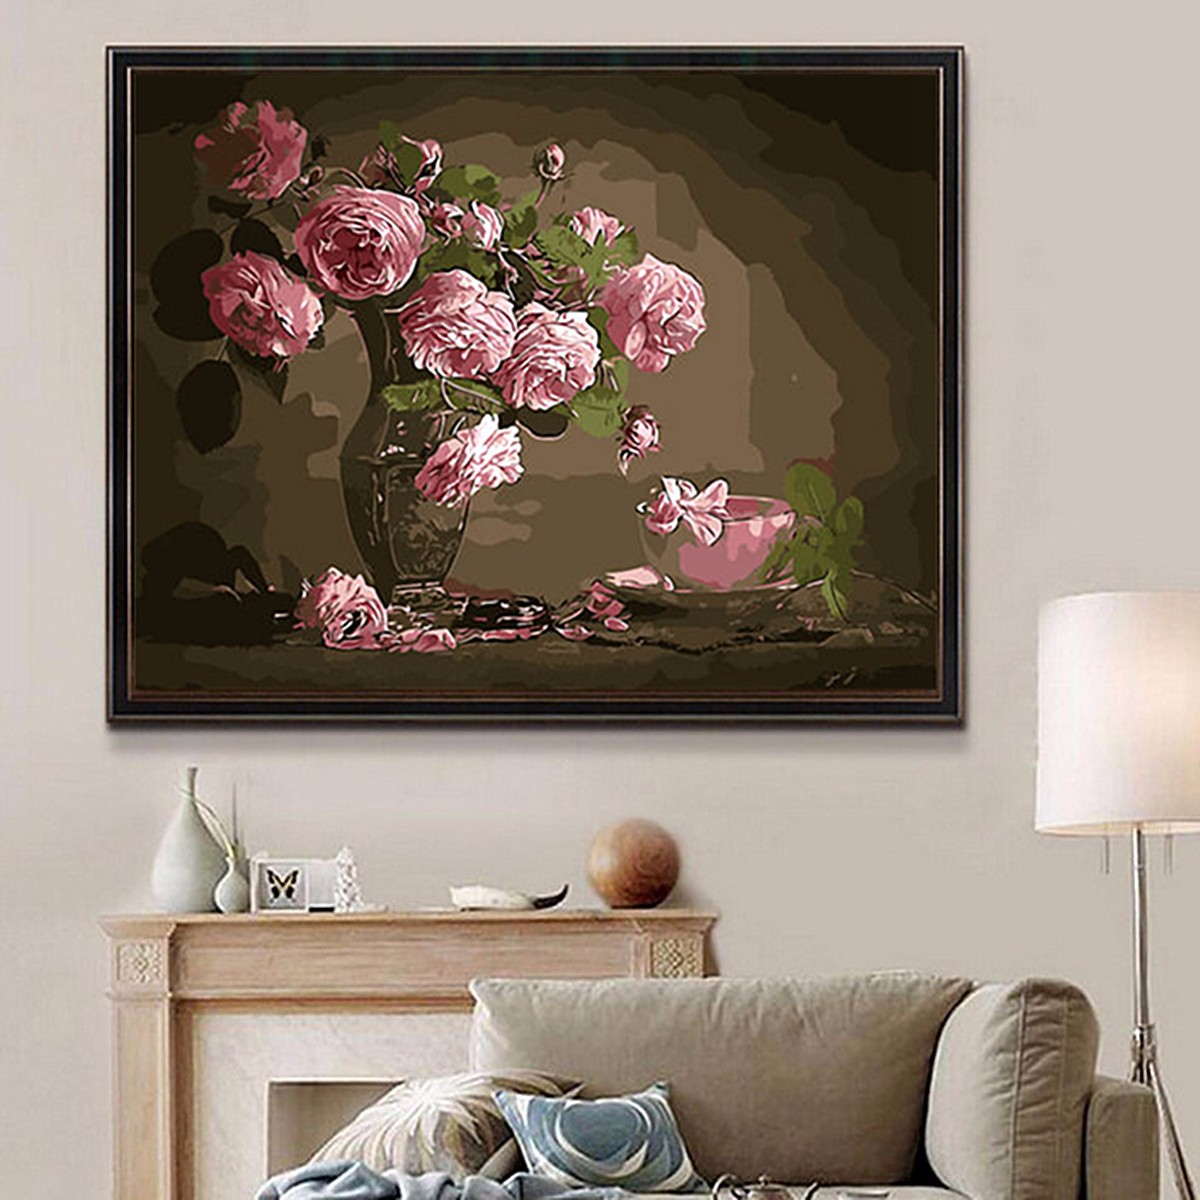 40X50CM New Pink Flower Vase Painting DIY Self Handicraft Paint Kit Wood Framed Home Decoration